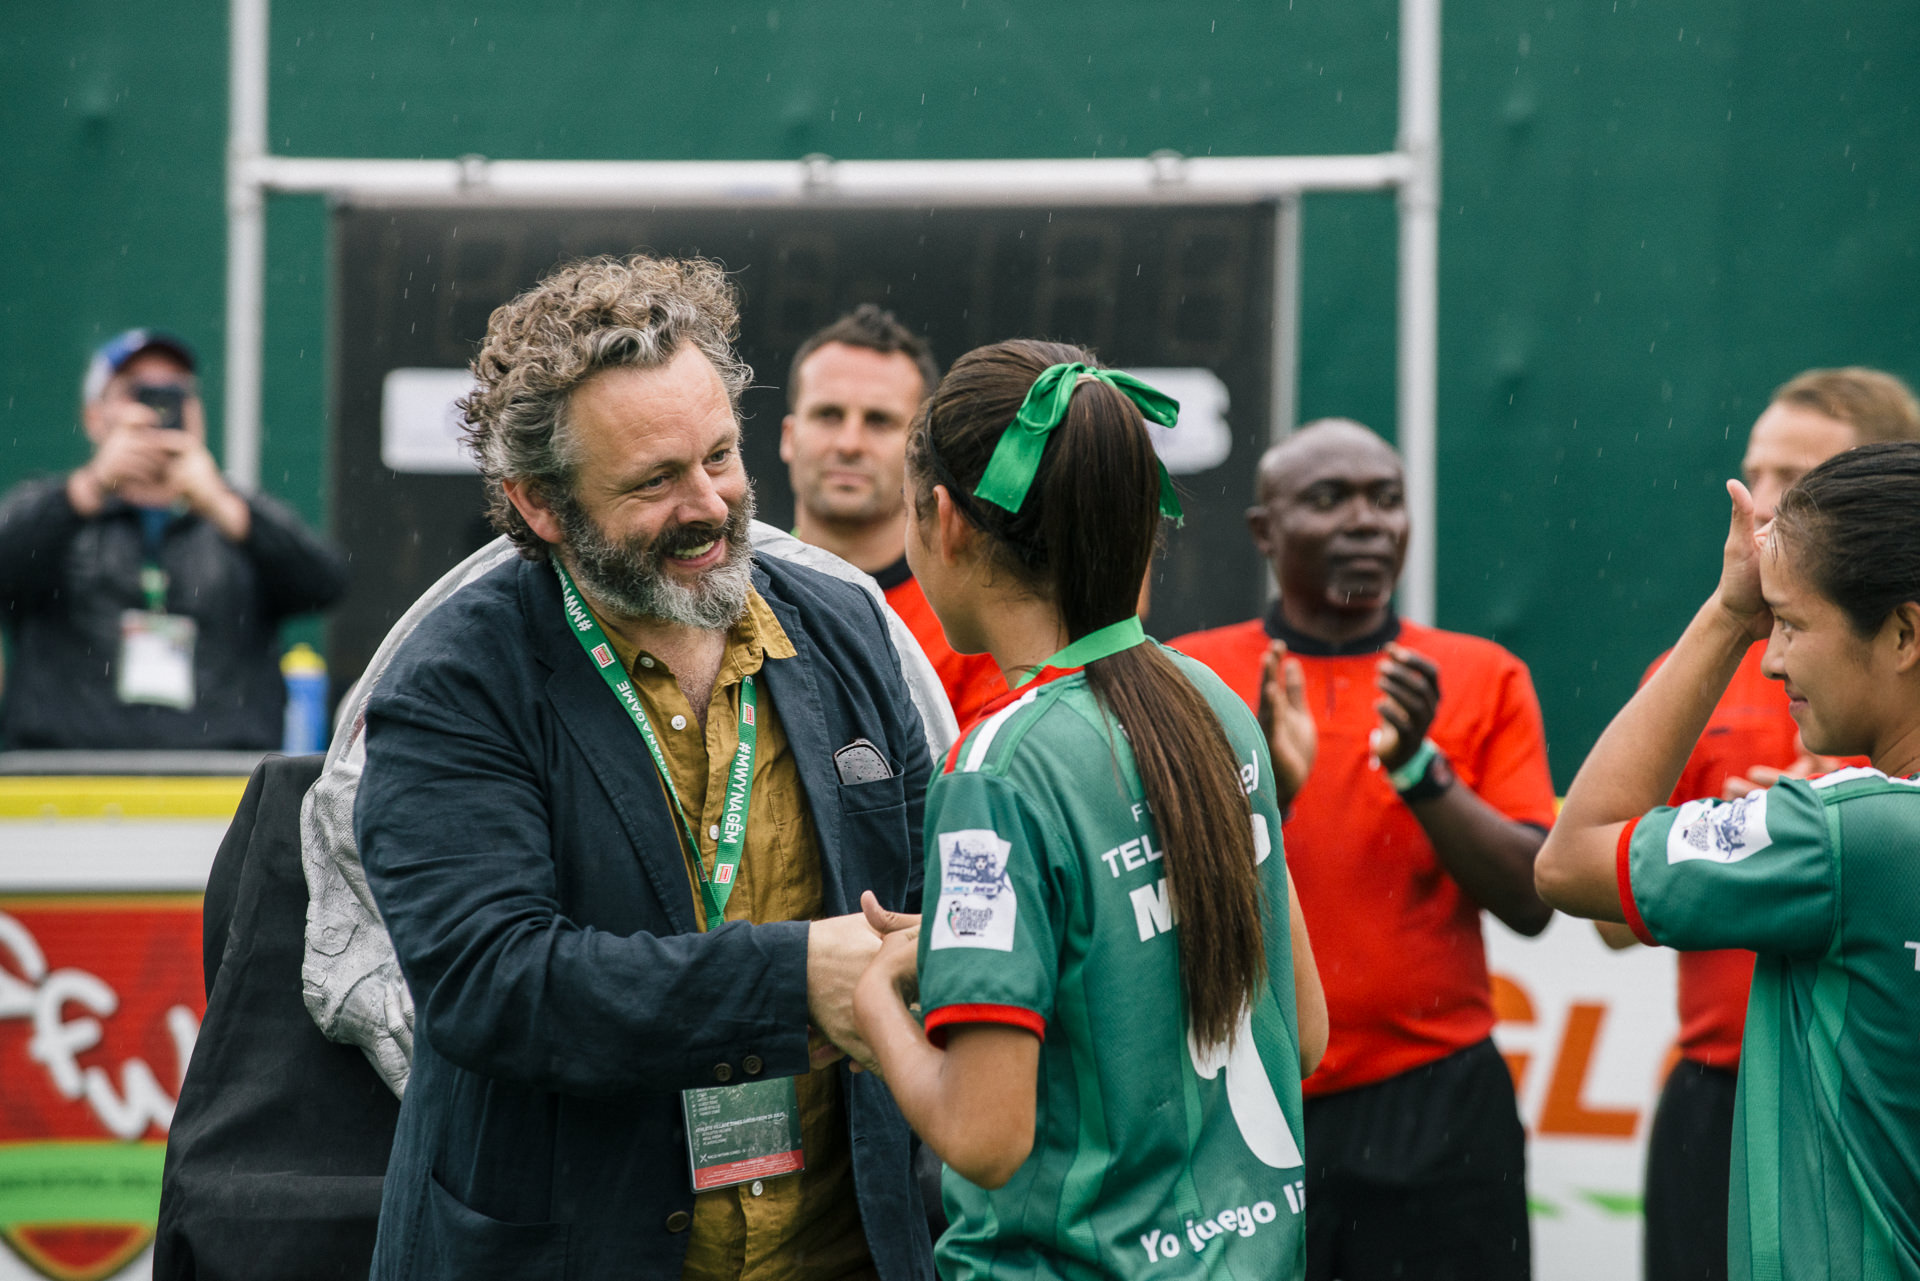 Michael Sheen handing the cardiff2019hwc medals